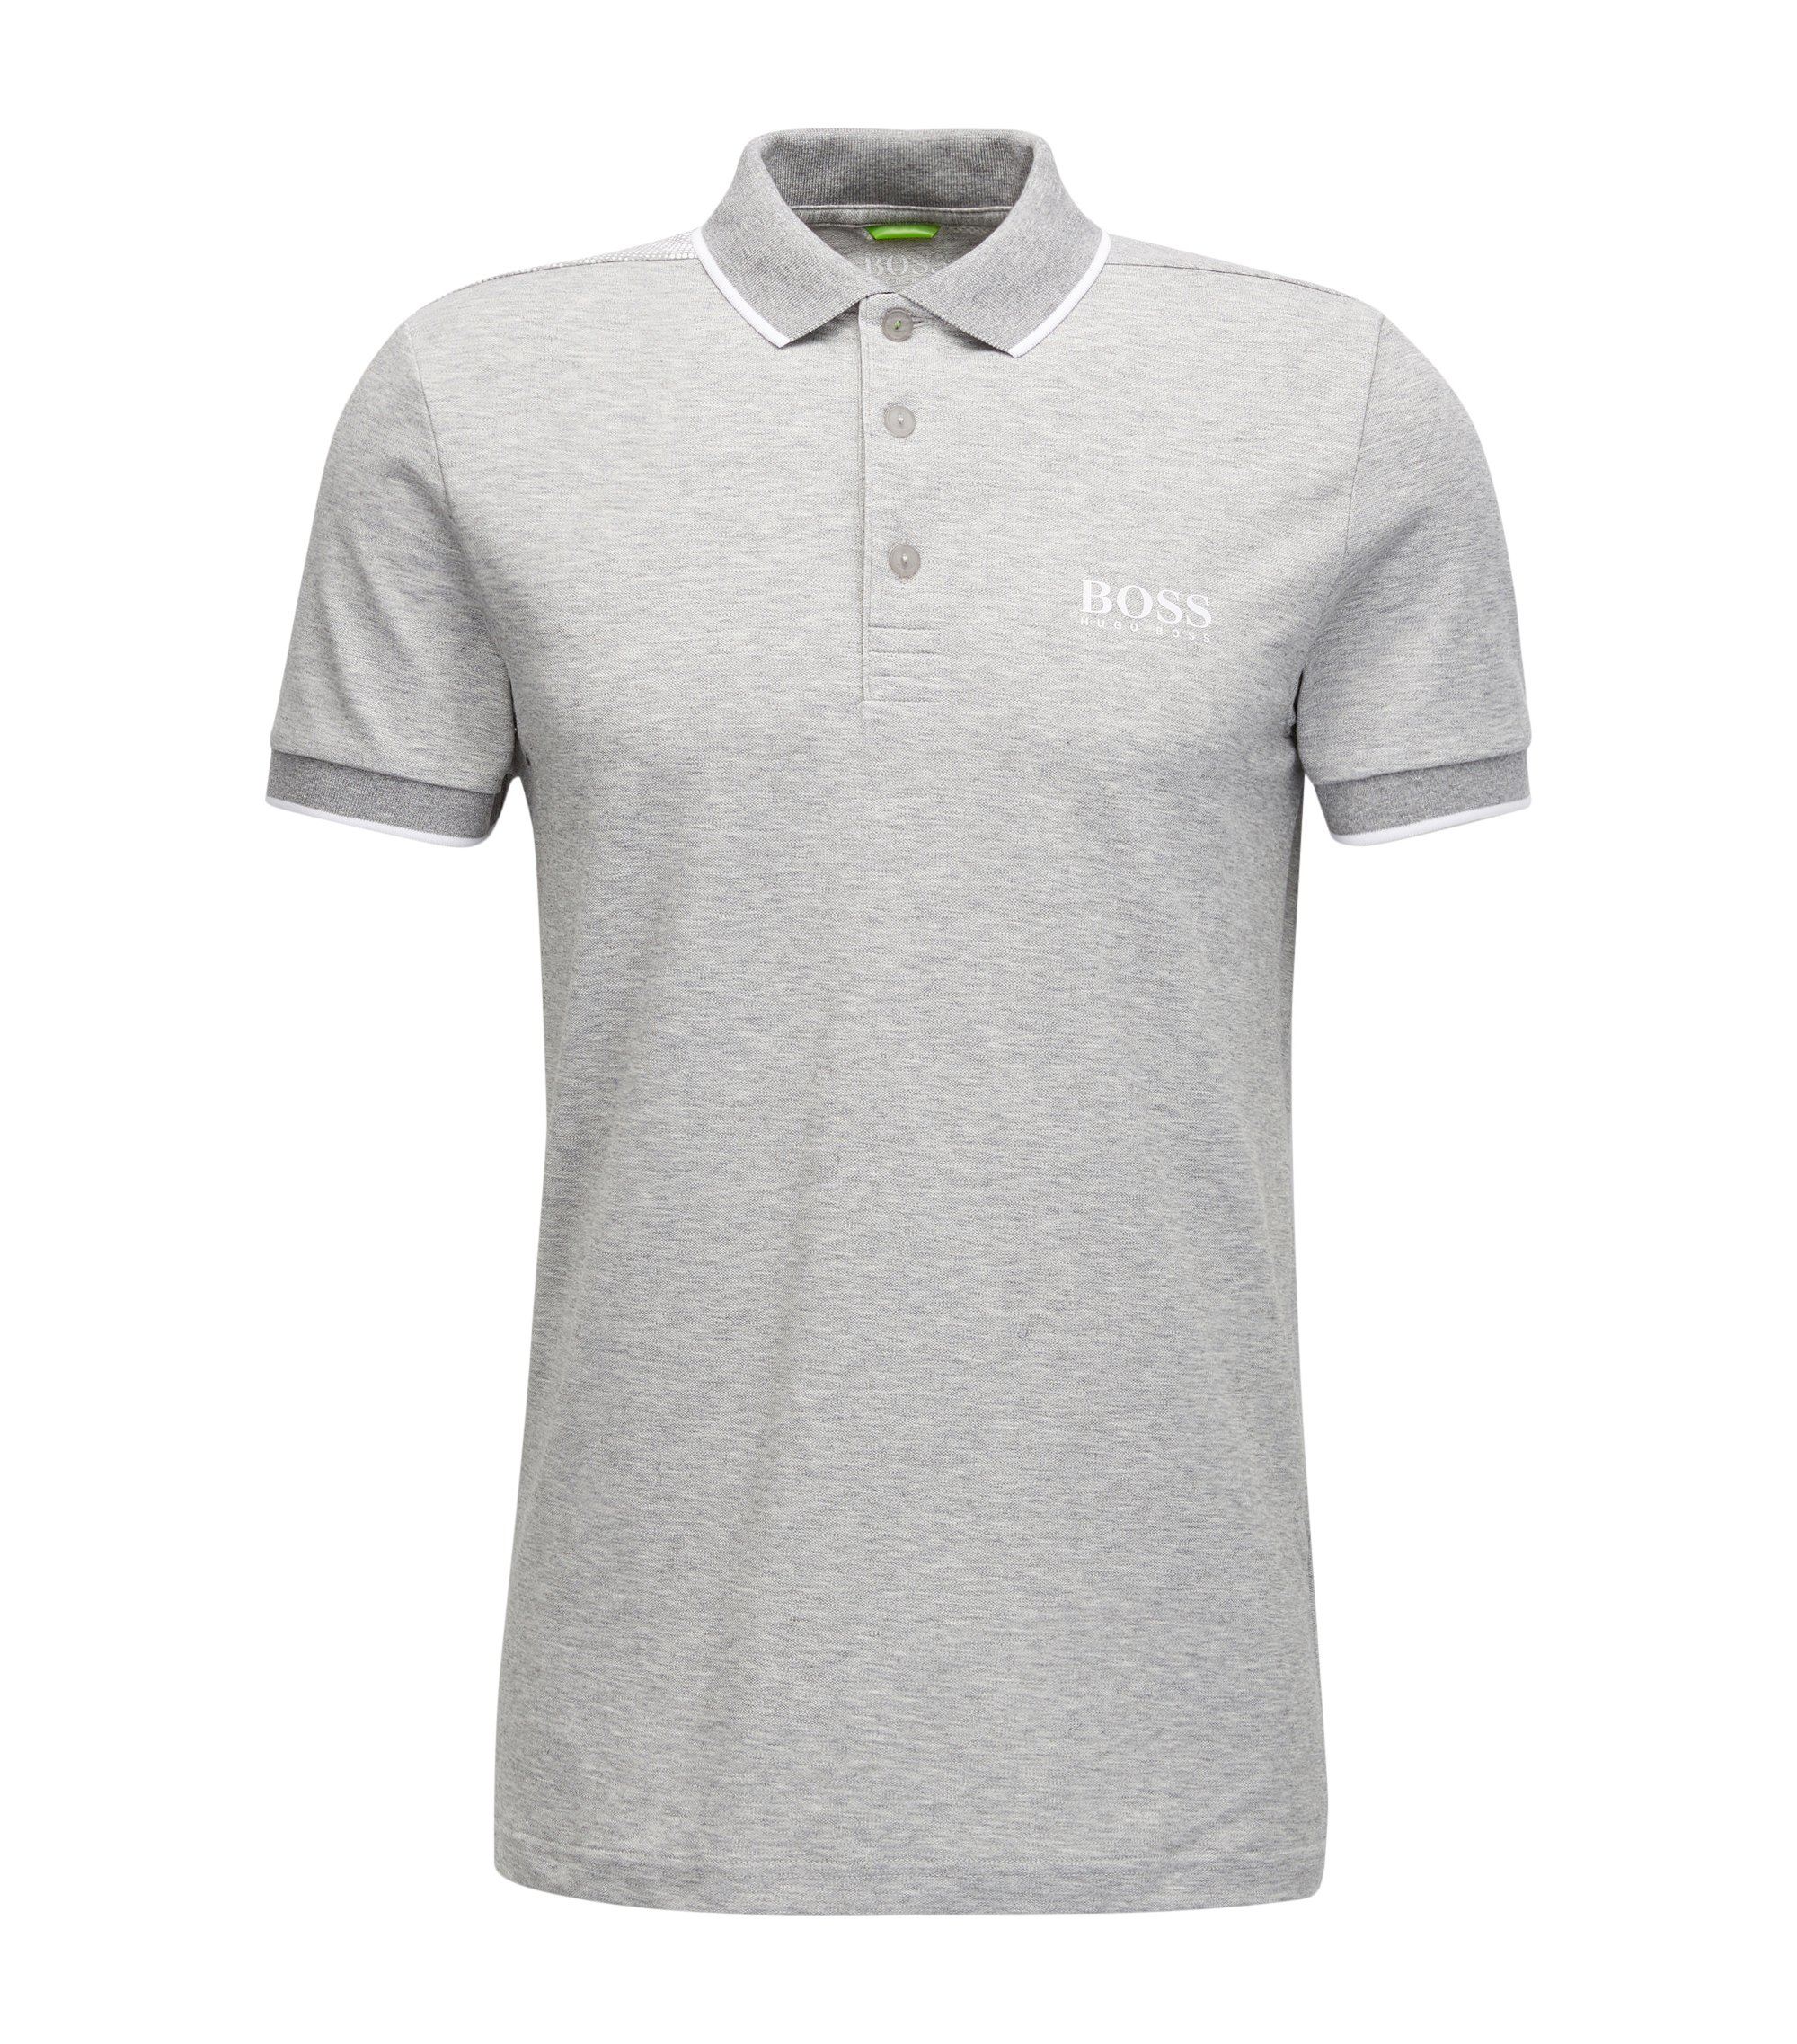 Tipped Cotton Blend  Polo Shirt, Slim Fit | Paul Pro, Light Grey